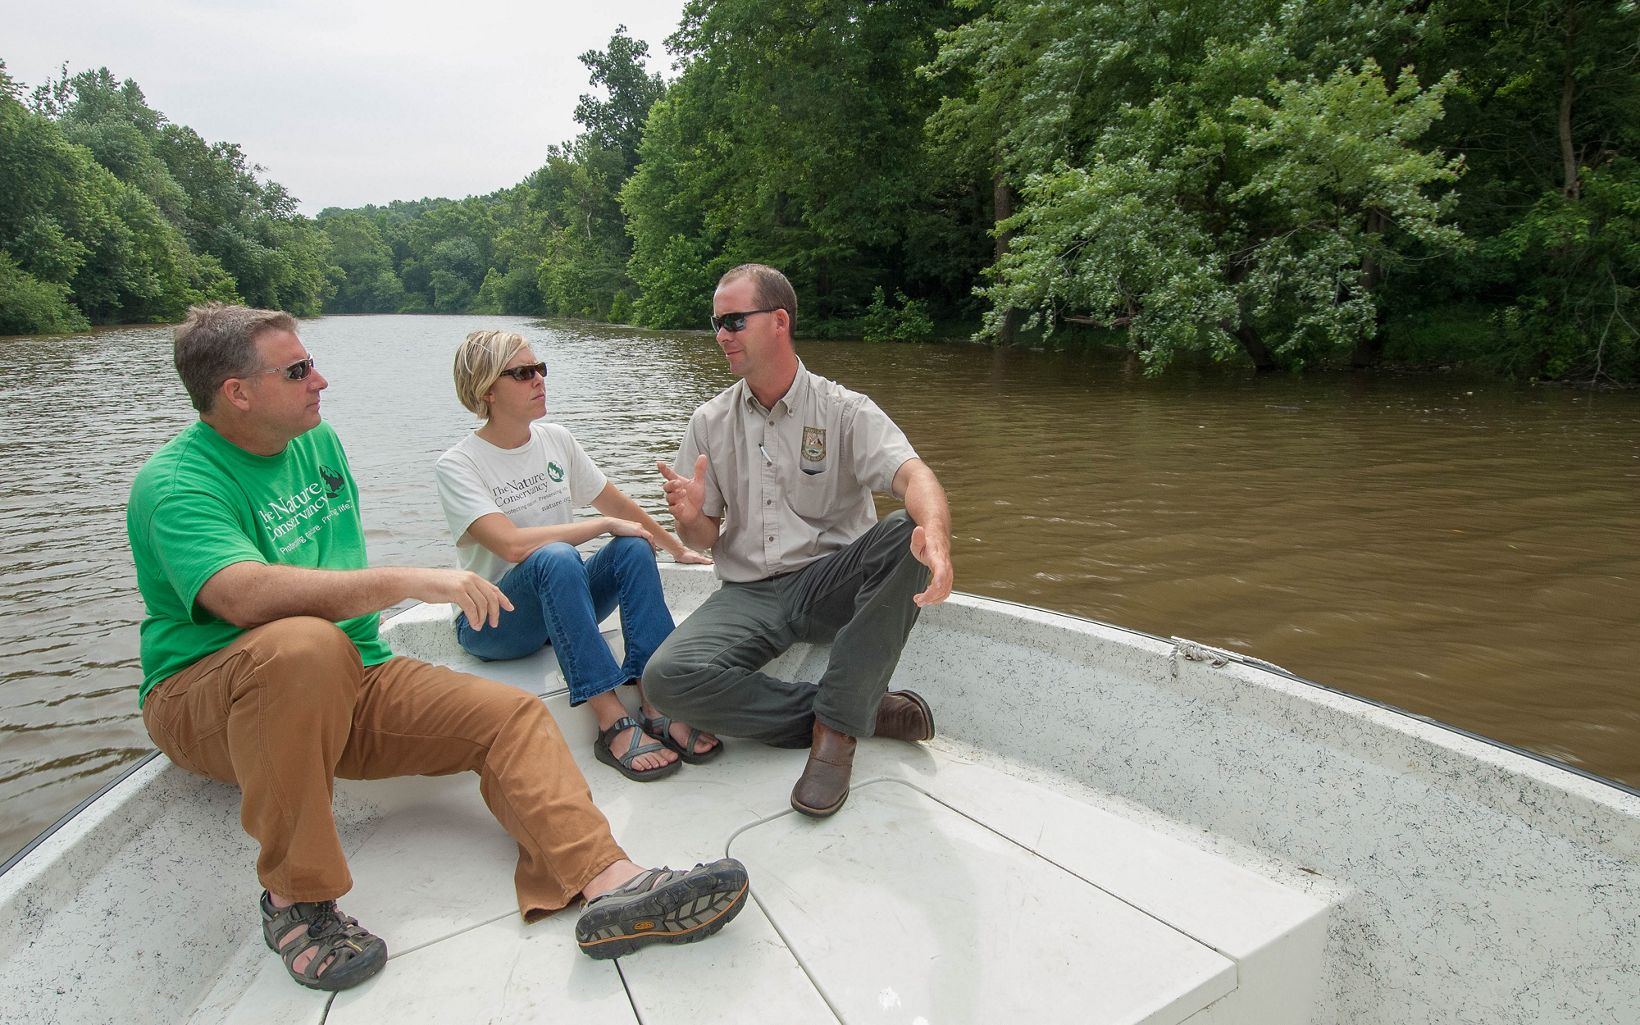 Partners explore the Tradewater River within Kentucky's Big River Corridor Project